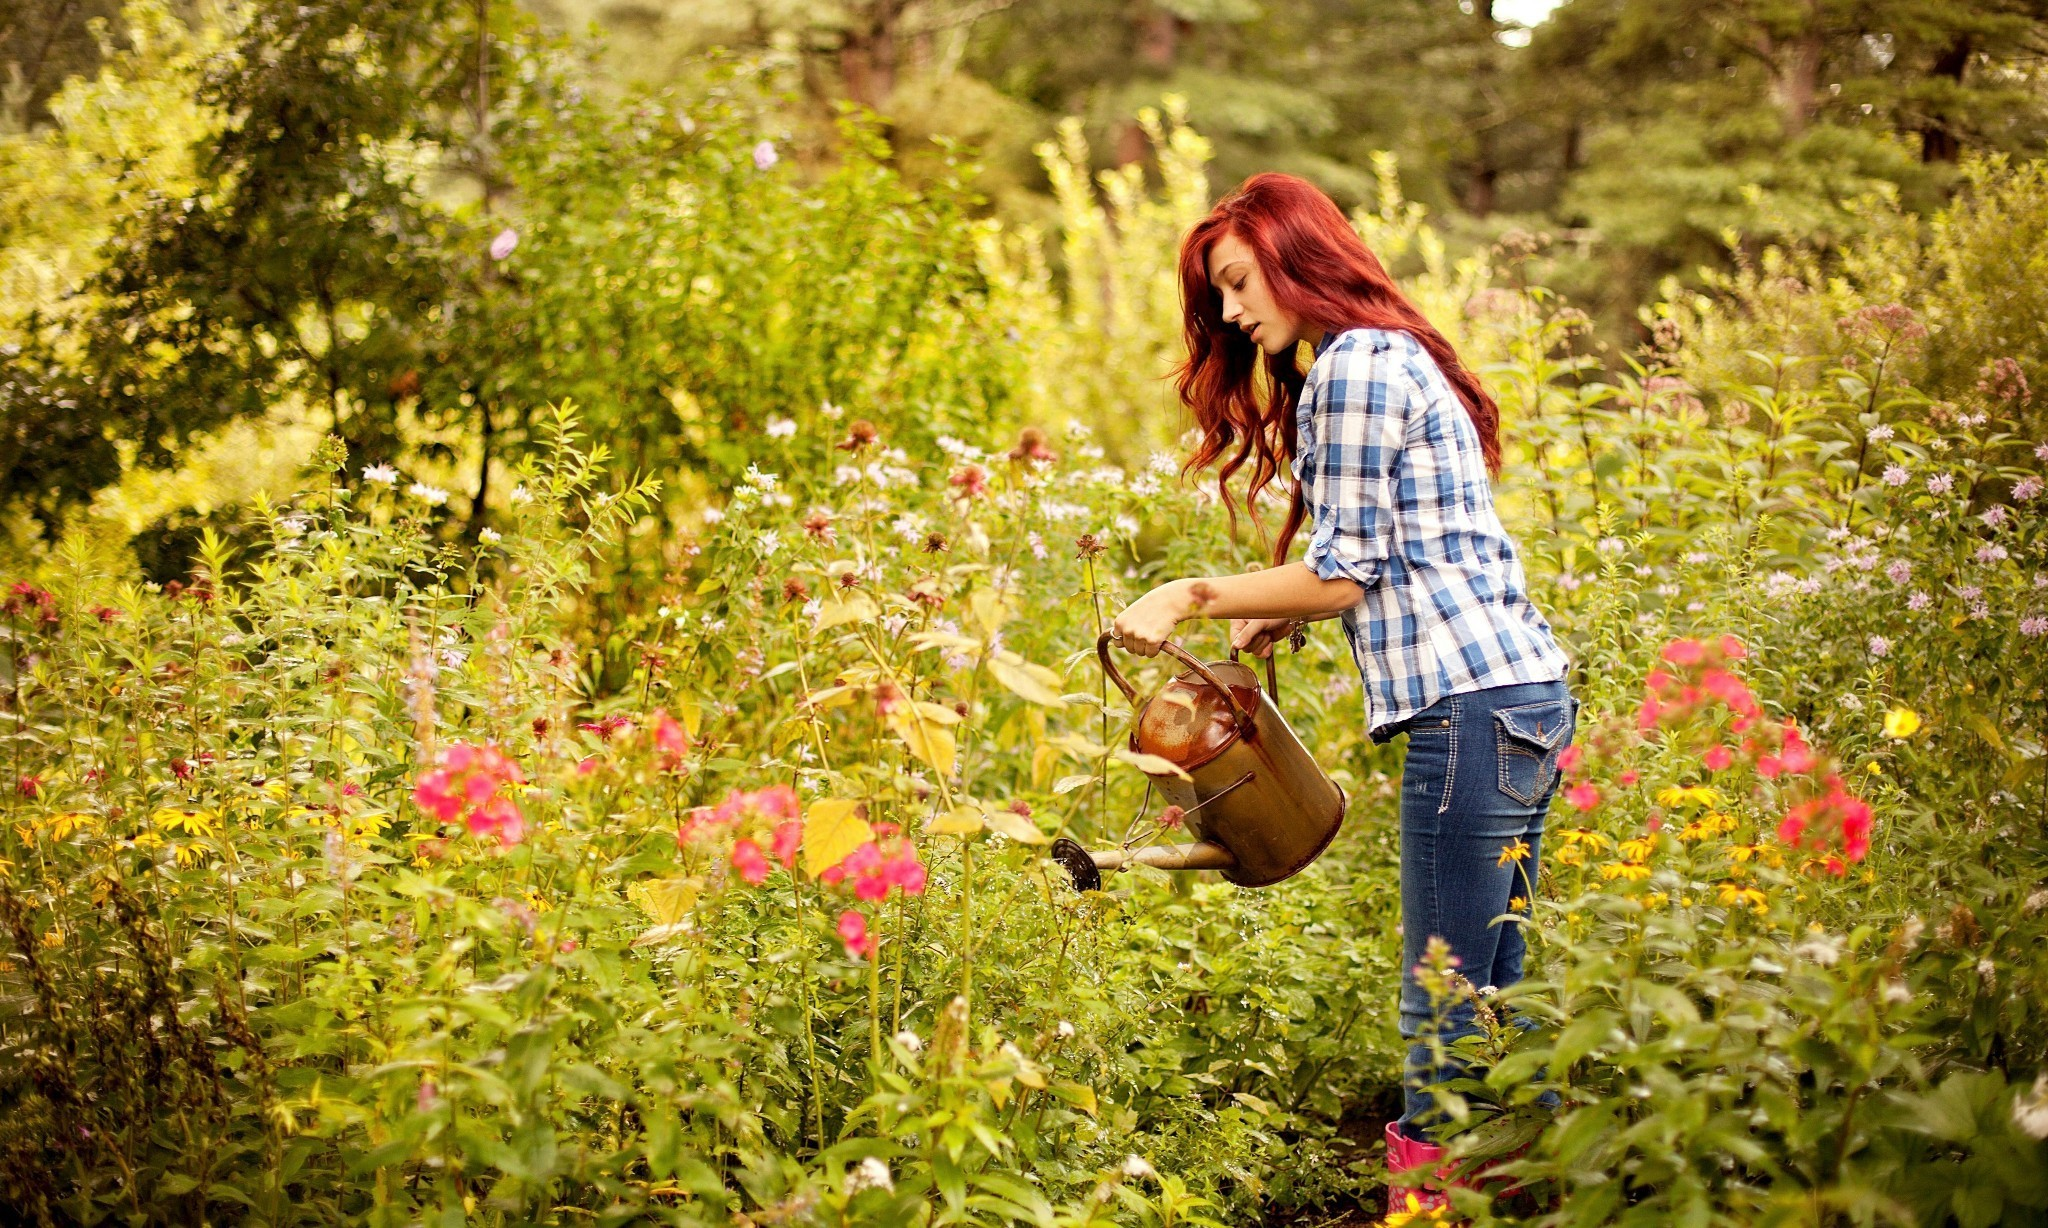 If you want to practise mindfulness, the garden is the place to be